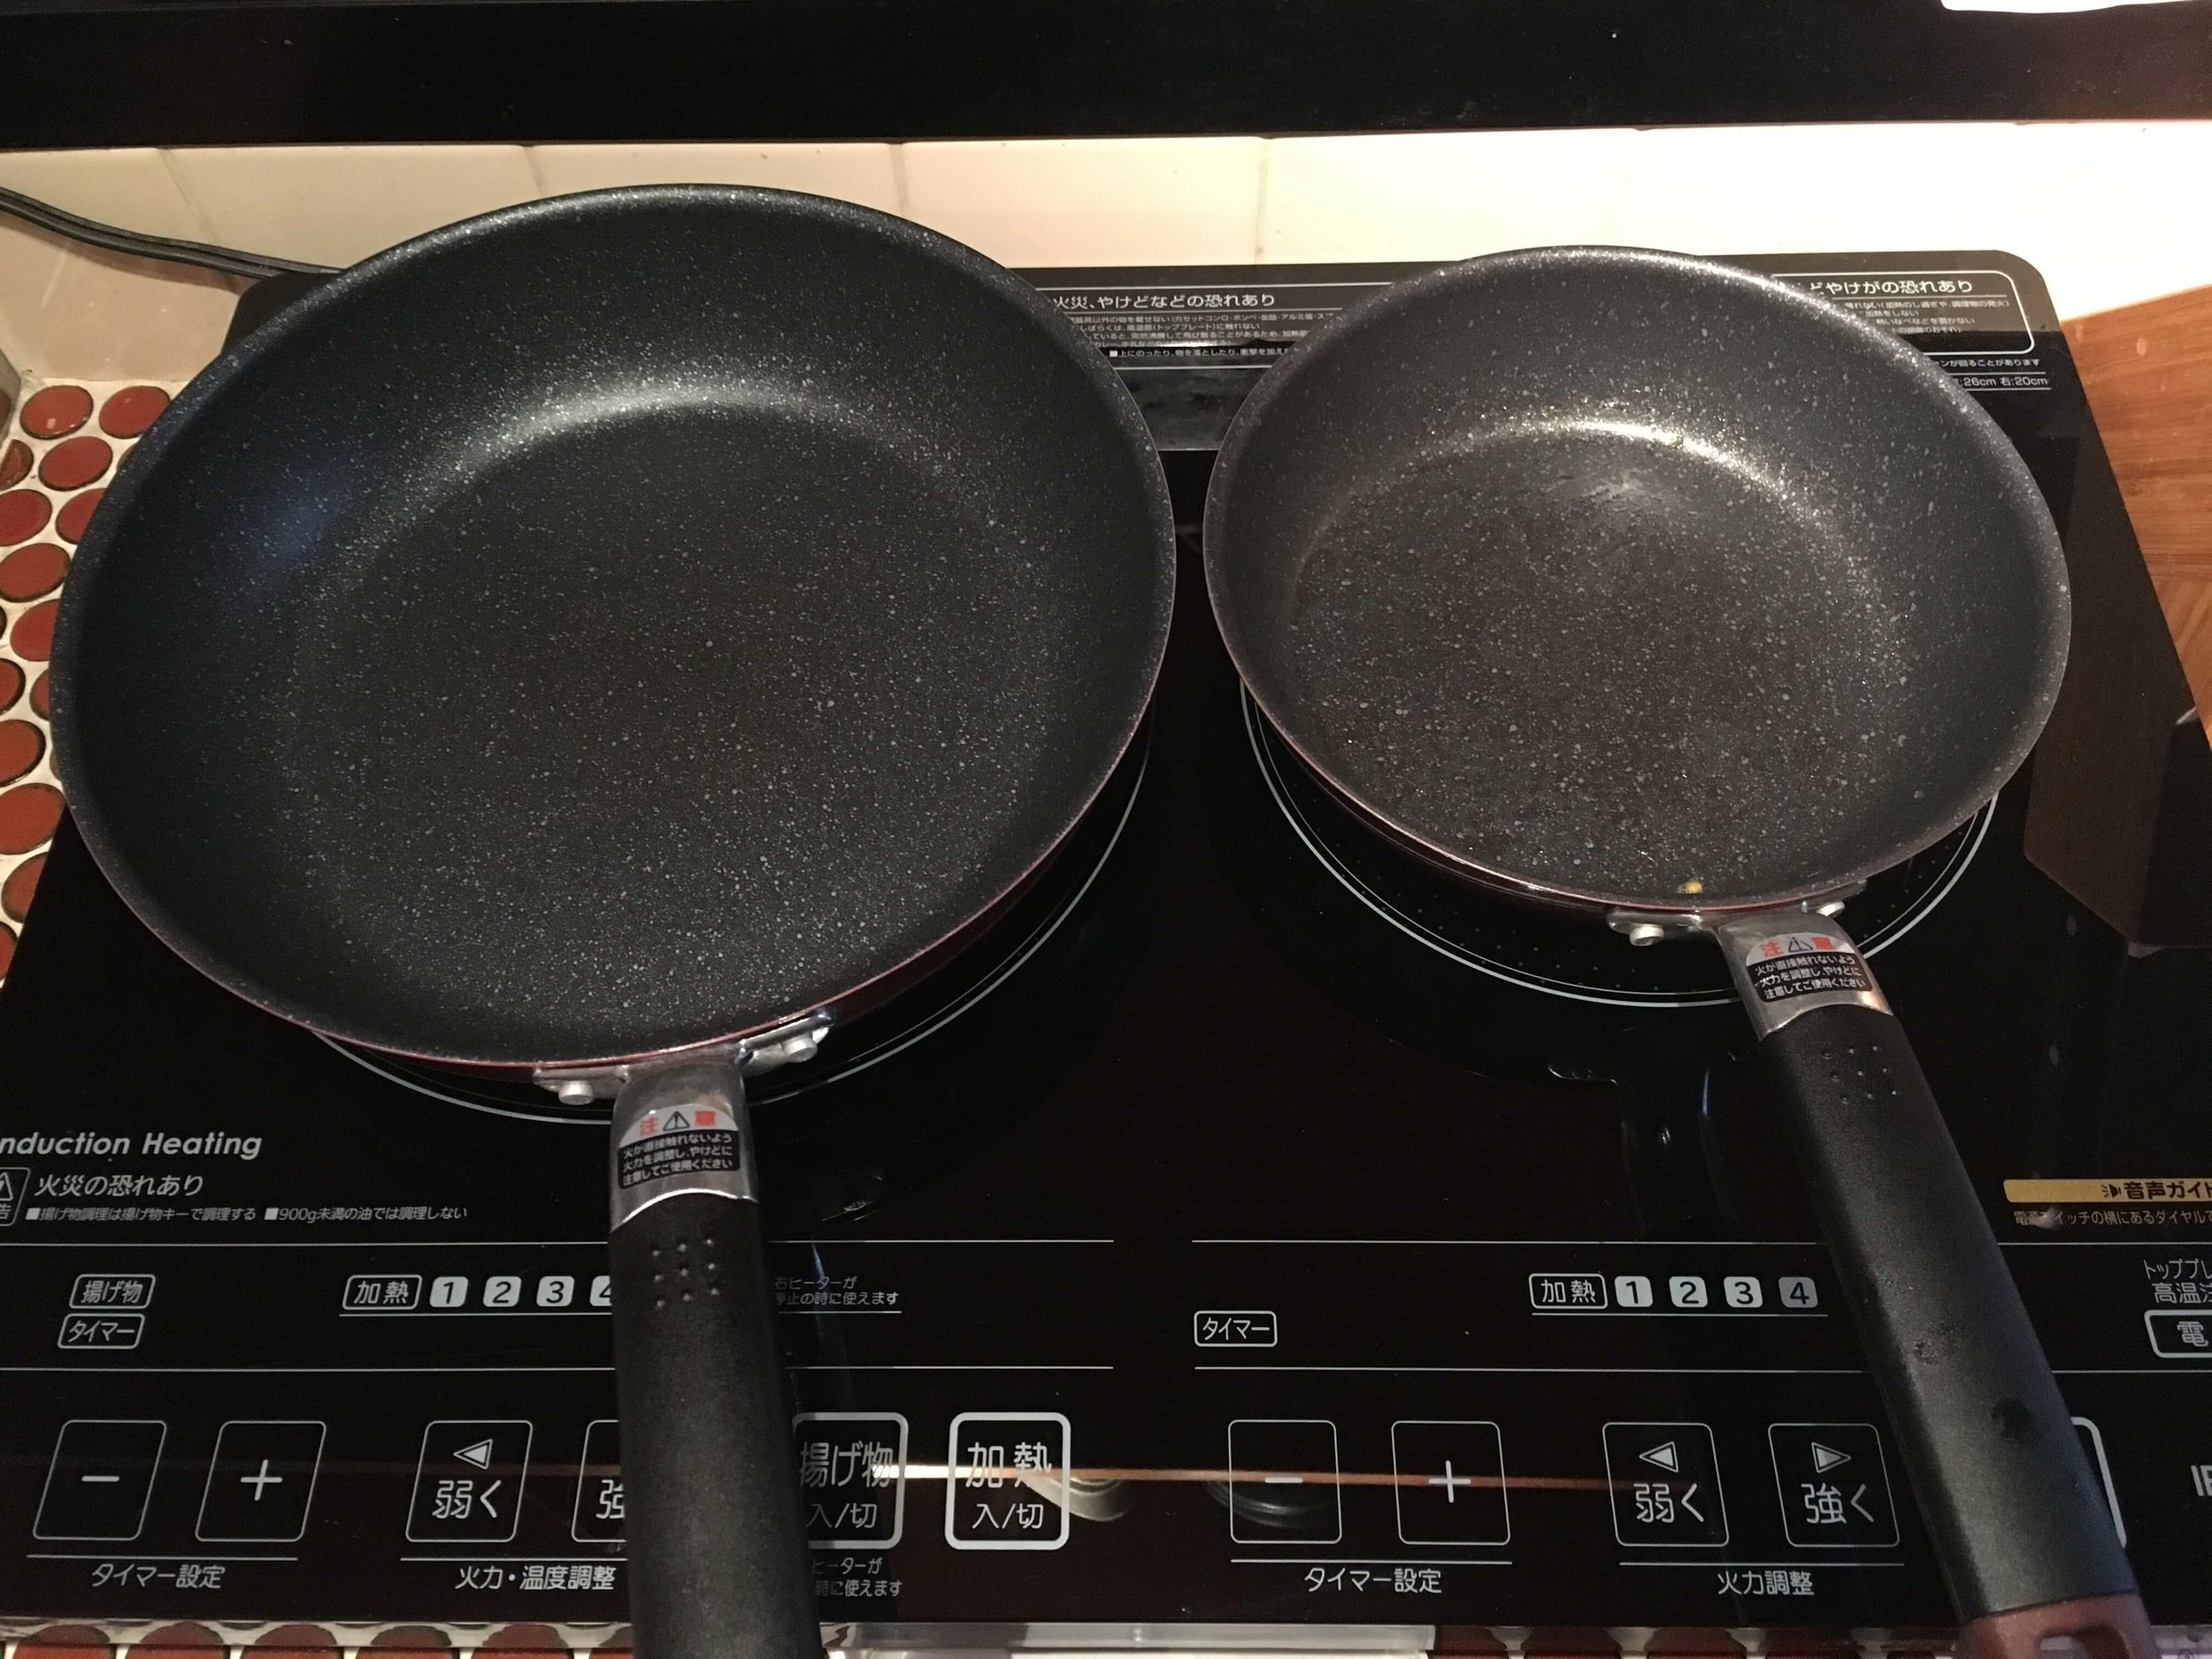 Our stovetop in Kyoto.  It chirped merrily to us in Japanese when we turned it on.